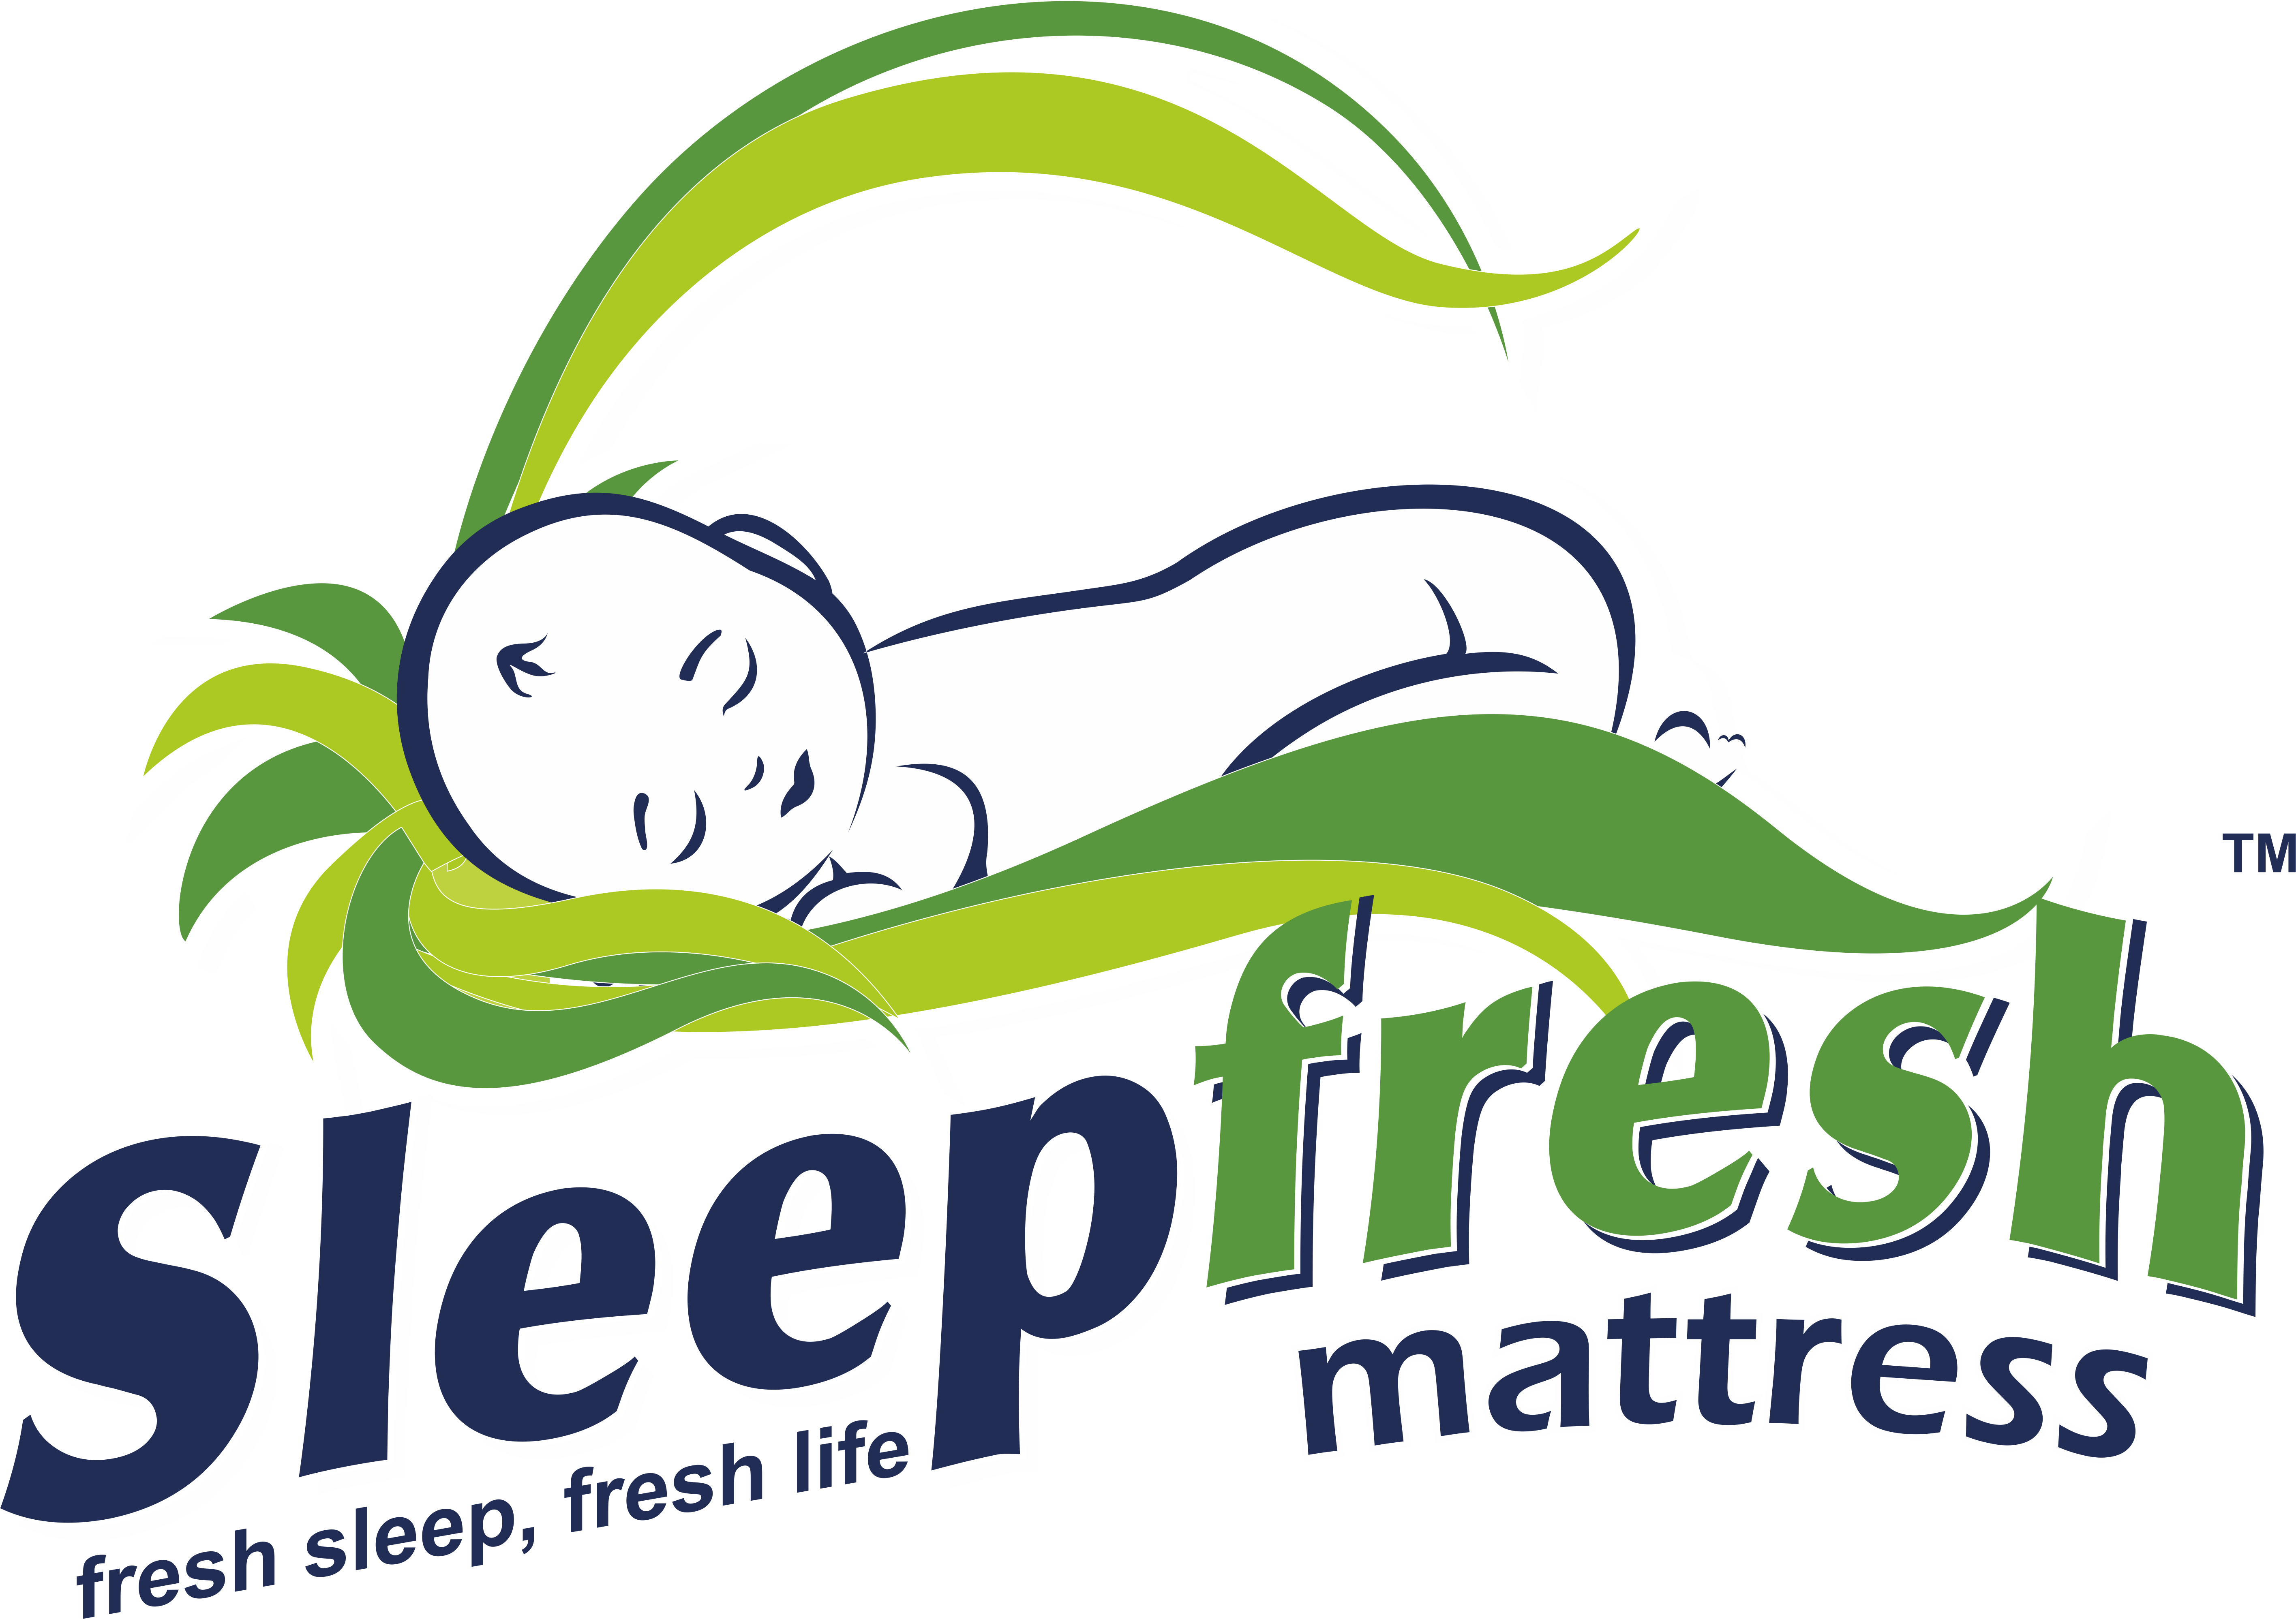 Sleepfresh